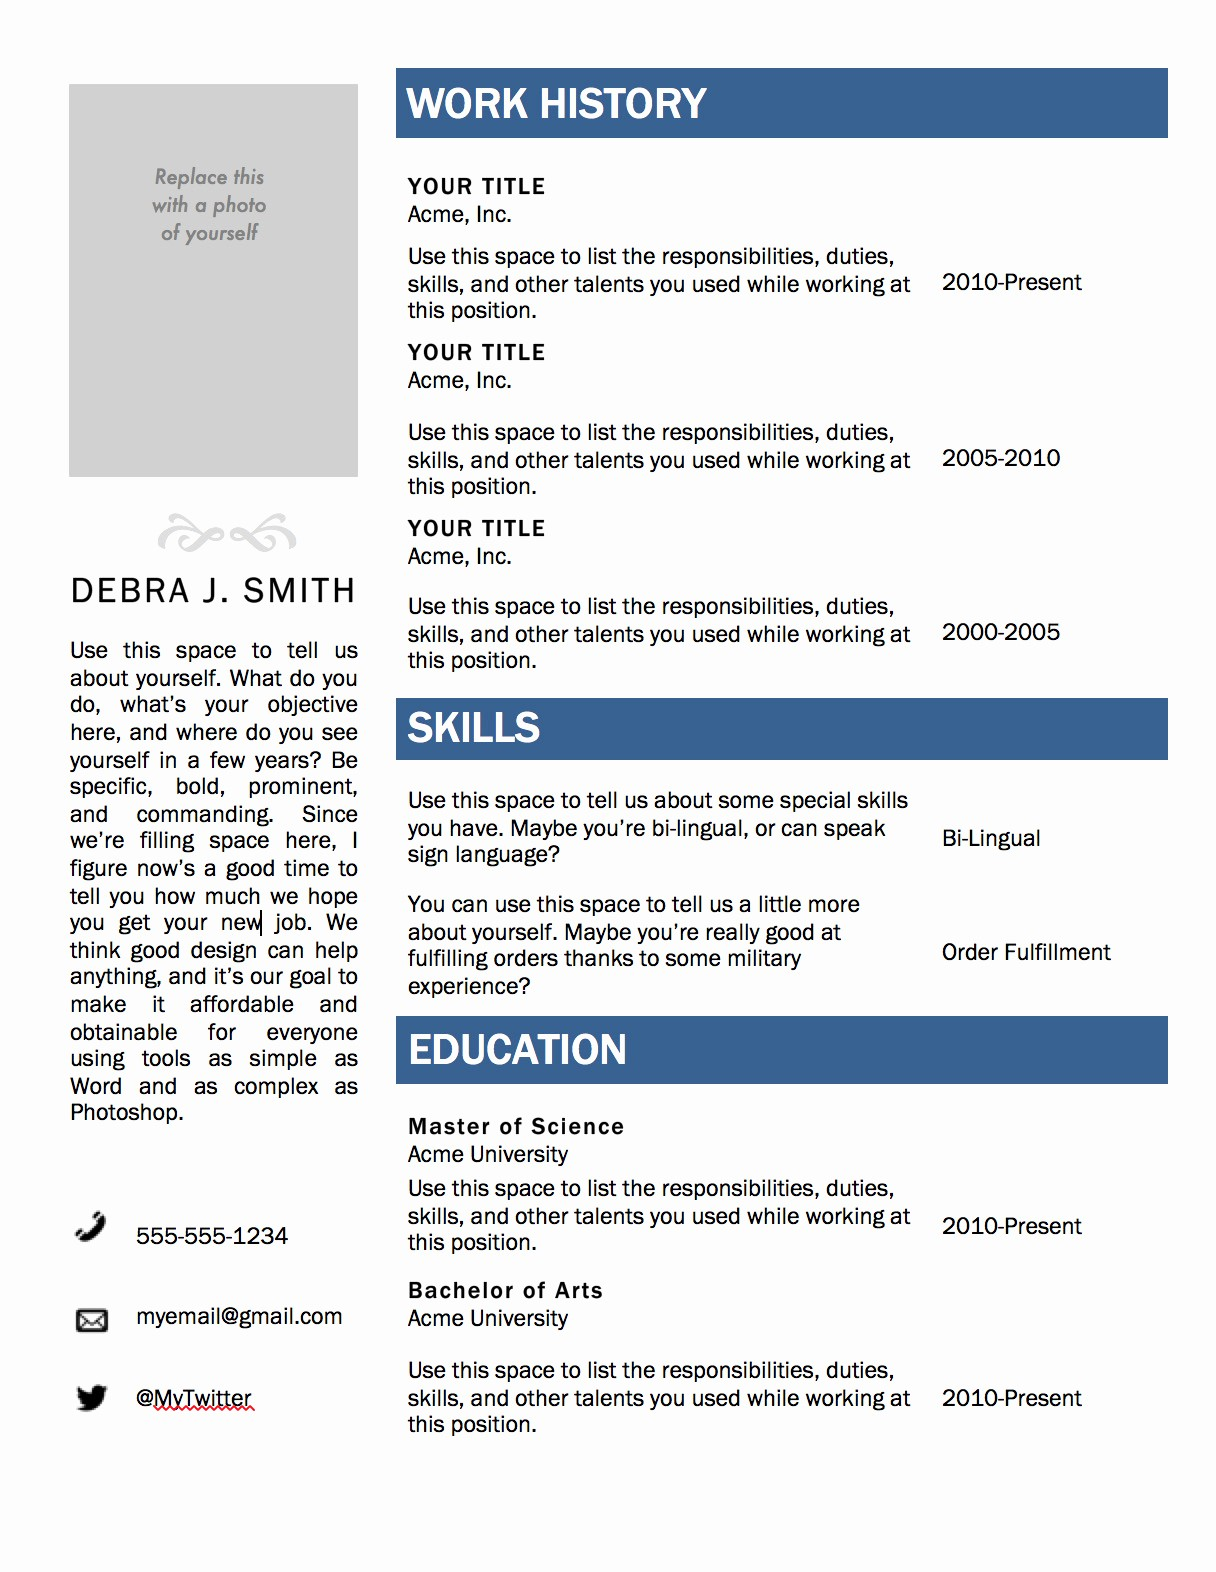 Ms Office Word Resume Templates Best Of Free Microsoft Word Resume Template — Superpixel